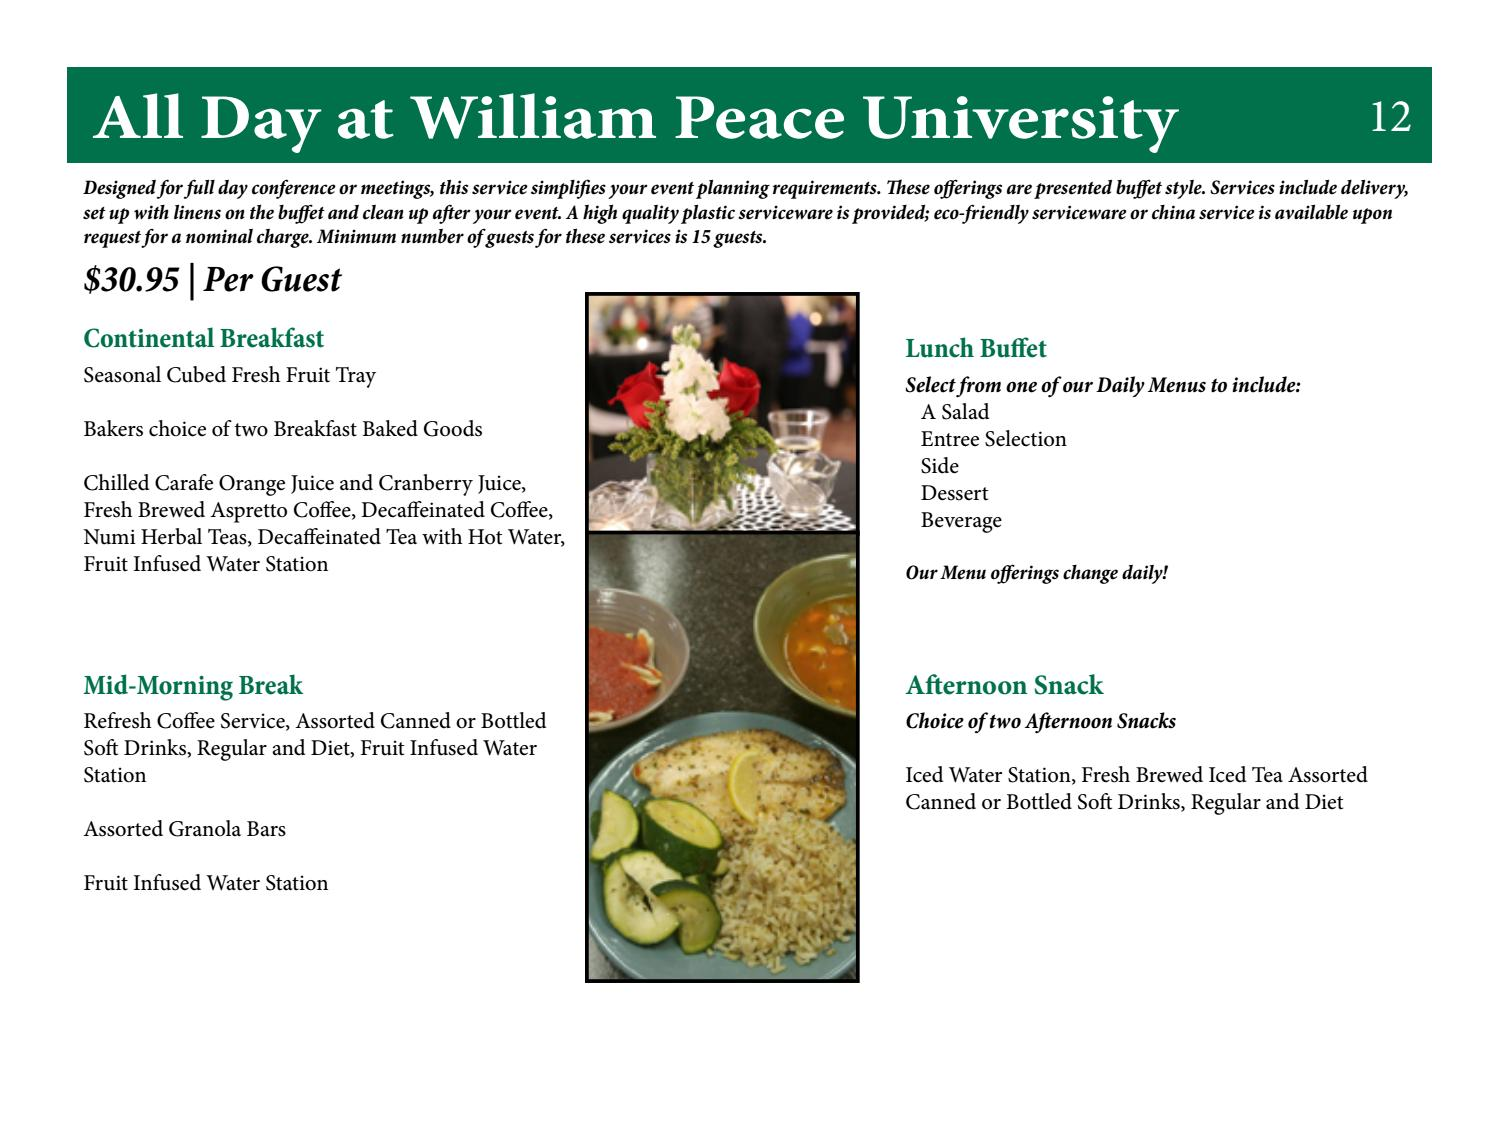 WPU 2016 Catering Menu by William Peace University - issuu